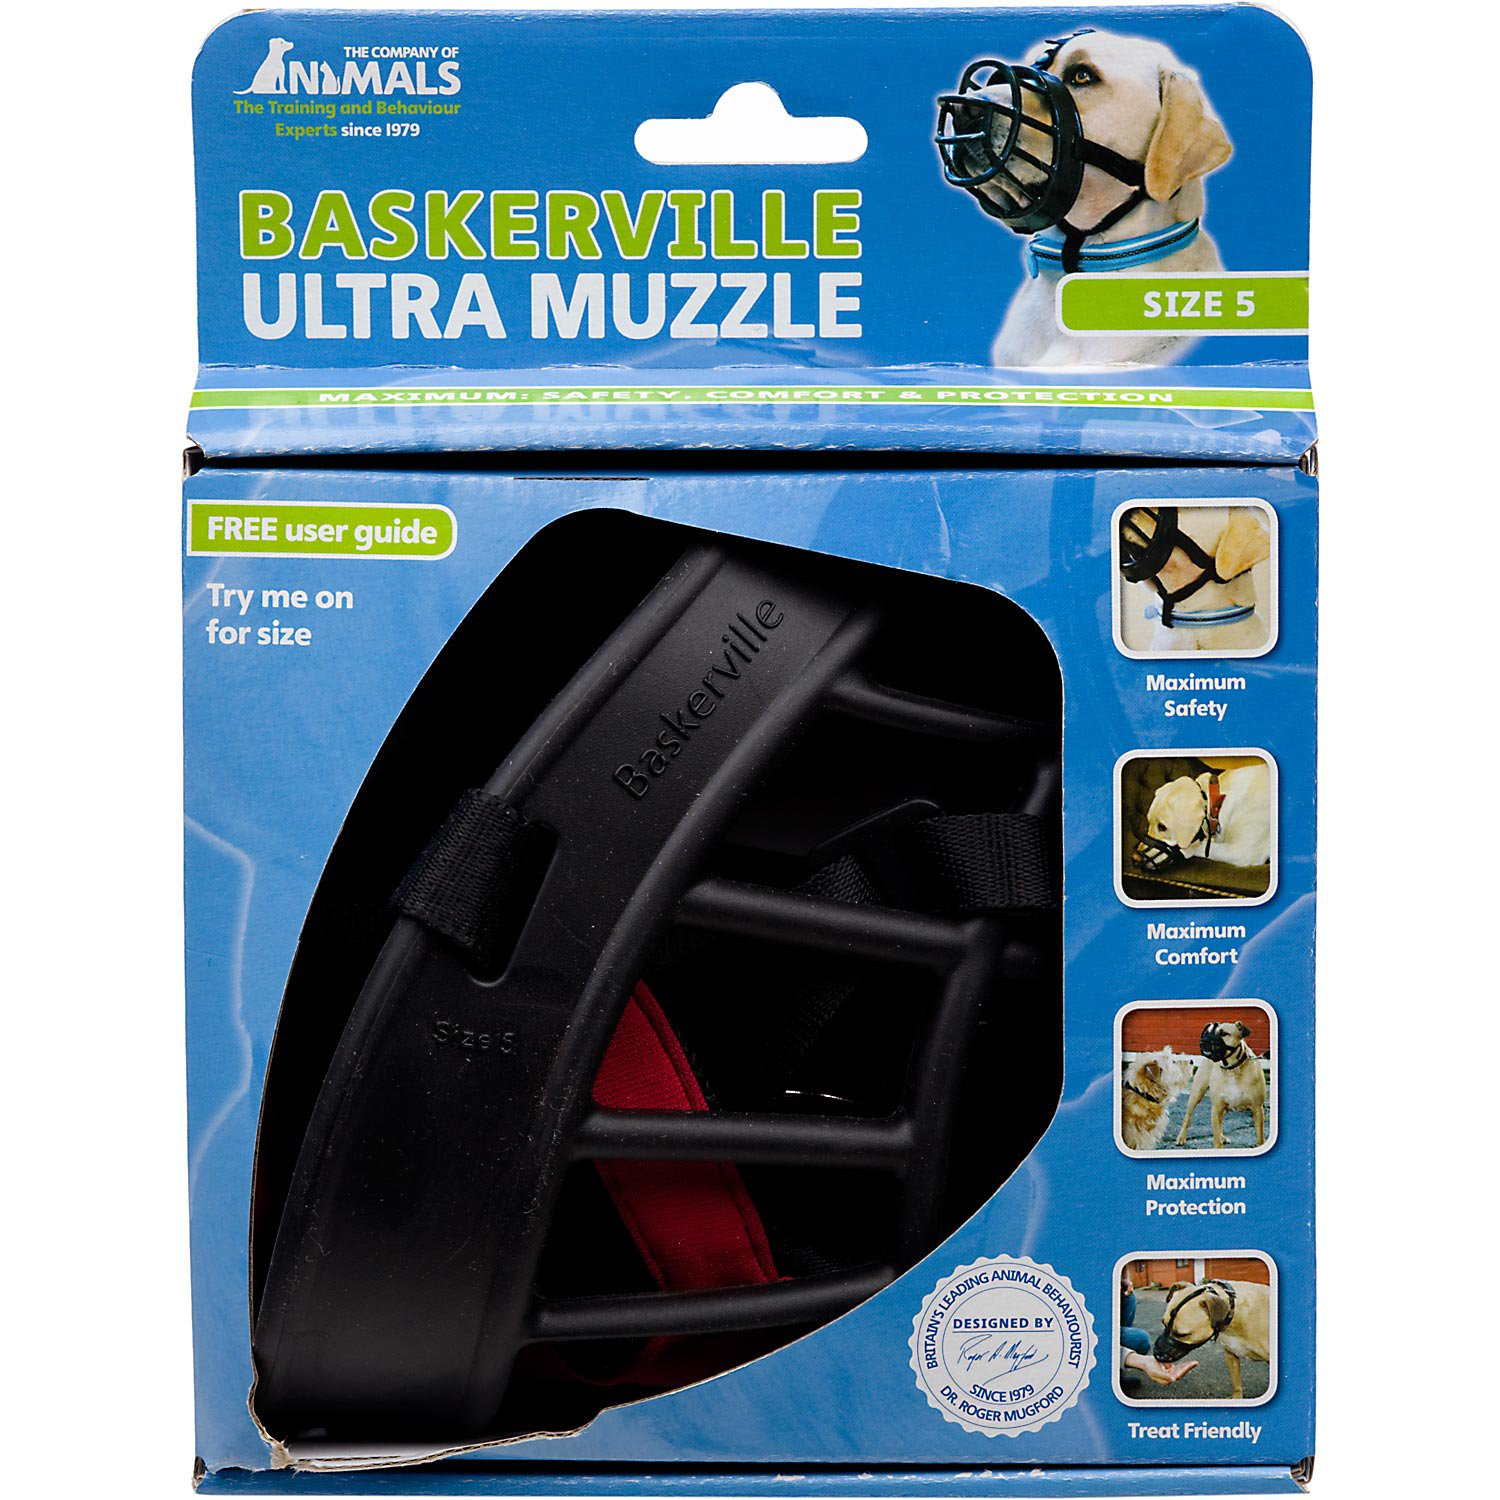 The Company Of Animals Baskerville Ultra Muzzle For Dogs, Size 6, Black